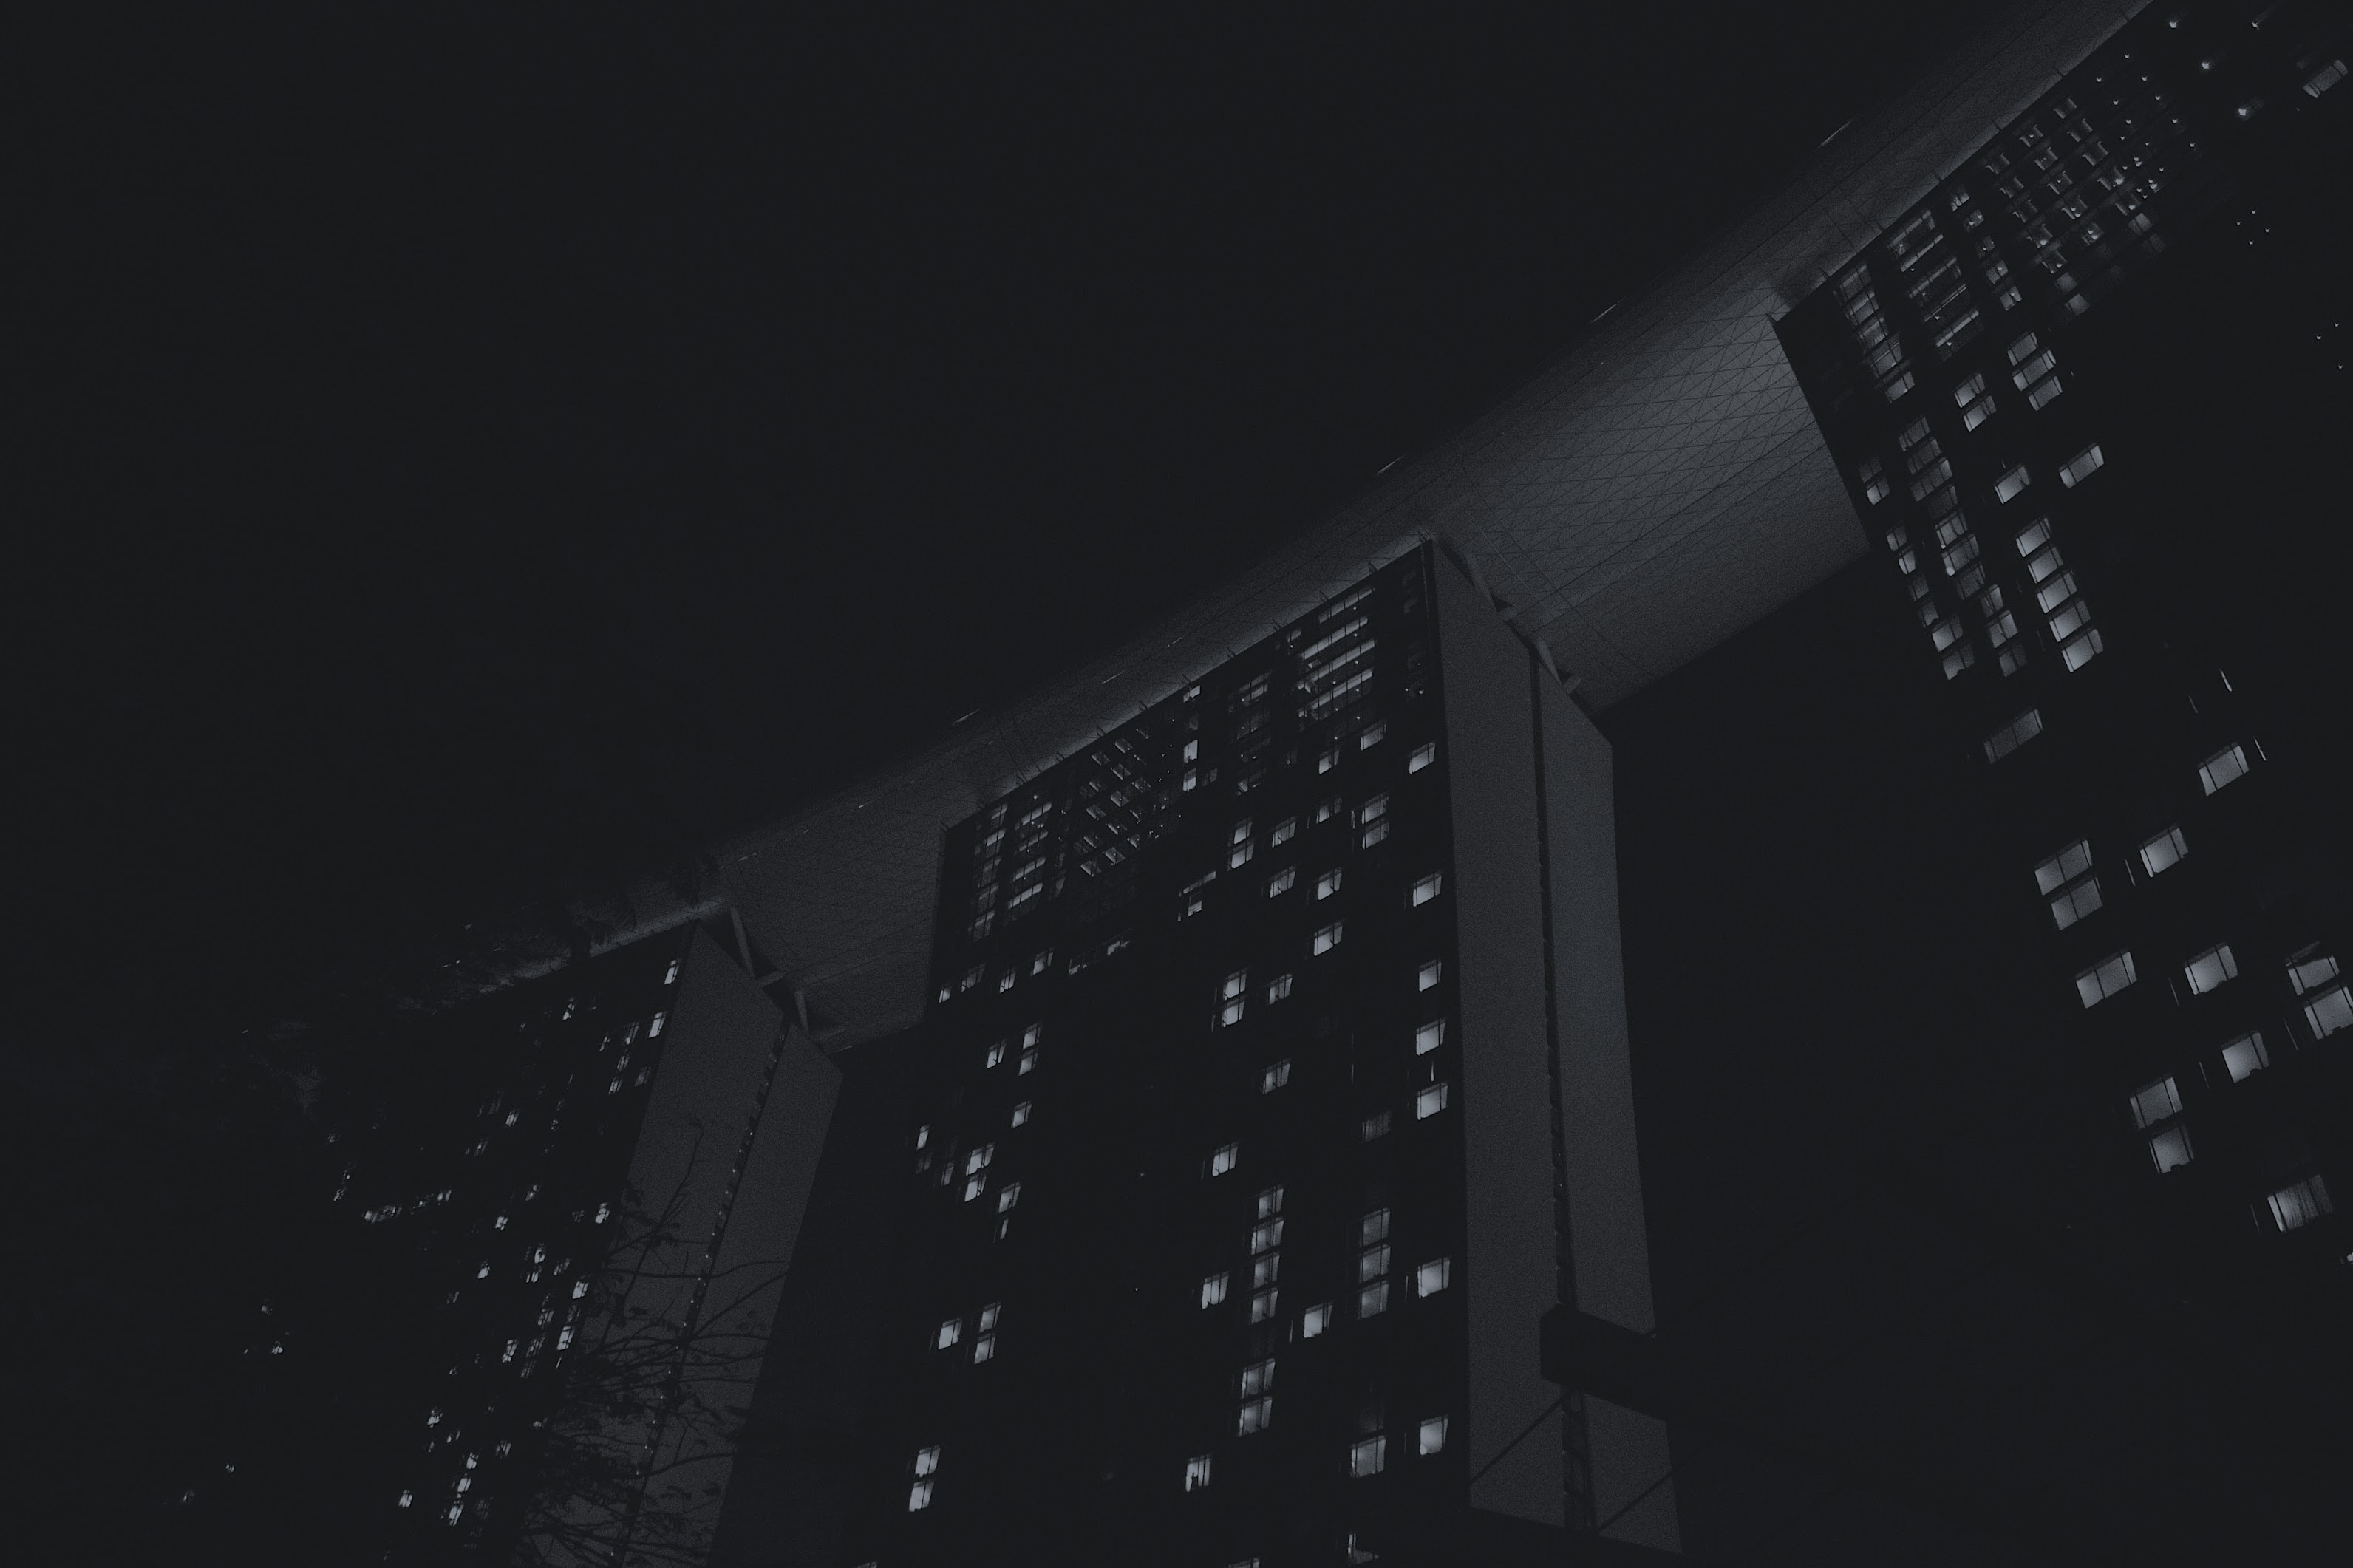 lowlight photography of high-rise buildings